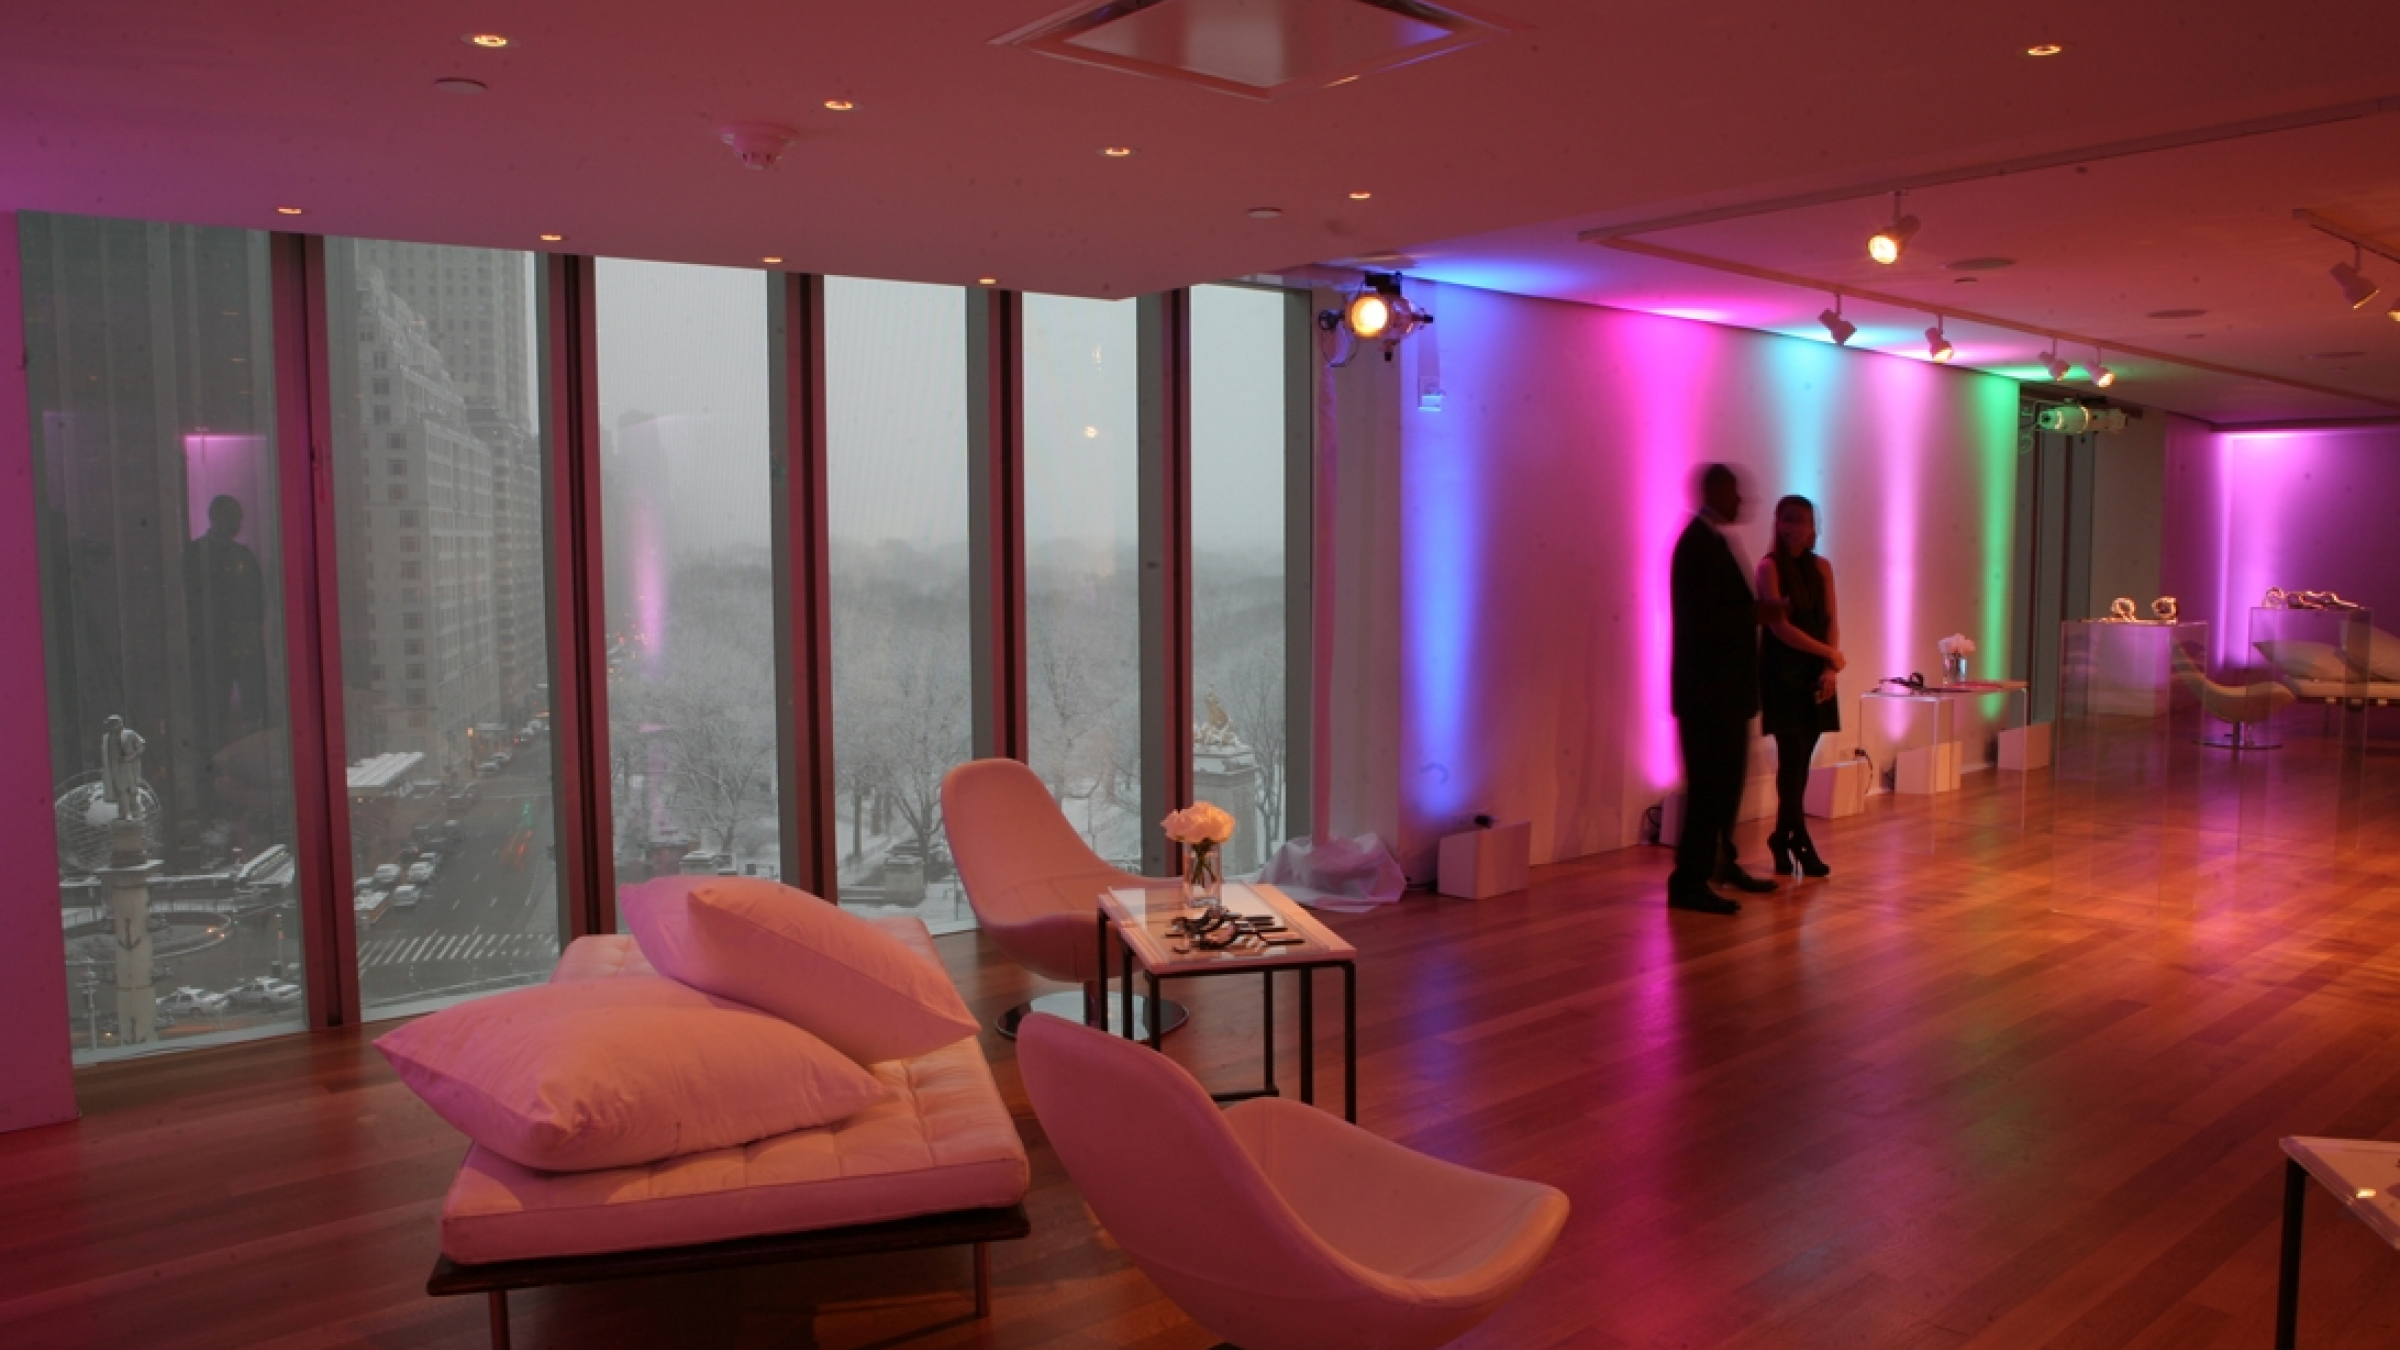 7th Floor Event Space at MAD